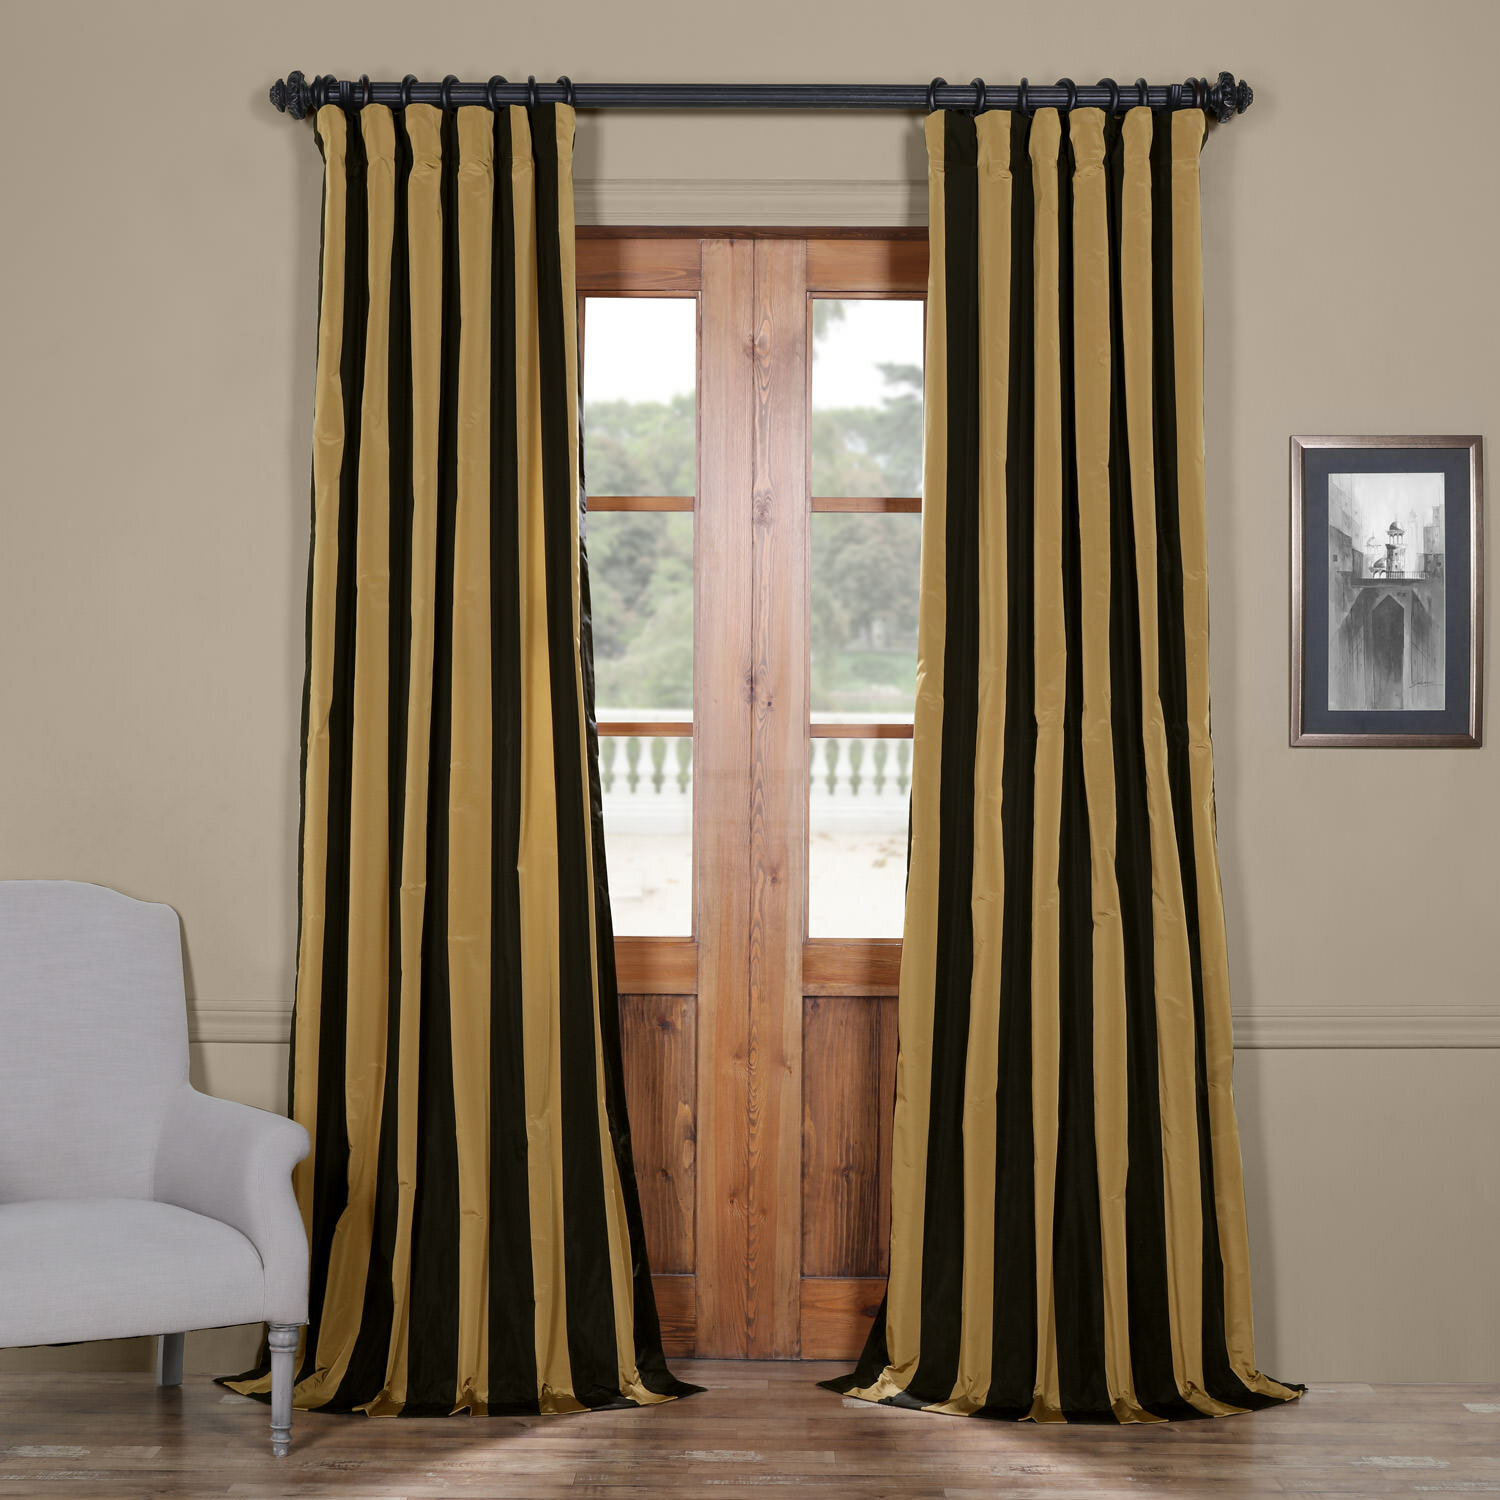 Details About Half Price Drapes Regency Stripe Faux Silk Taffeta Single Curtain Panel With Solid Faux Silk Taffeta Graphite Single Curtain Panels (View 7 of 30)